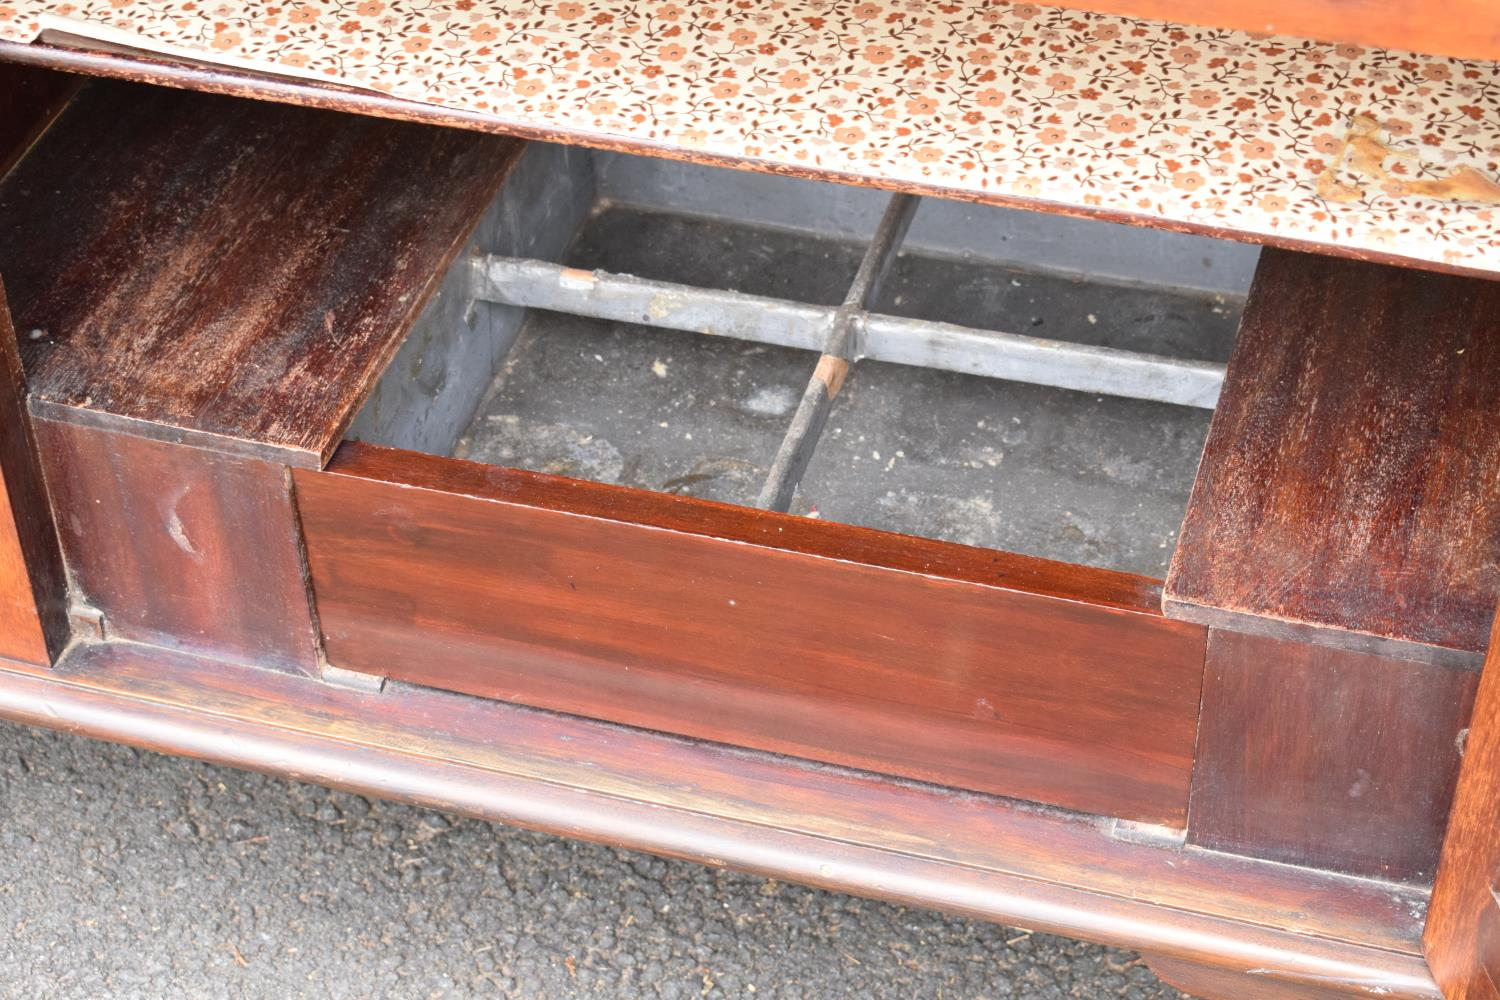 Edwardian mirror backed sideboard/ drinks cabinet. 168 x 56 x 183cm. The top section lifts off and - Image 9 of 11